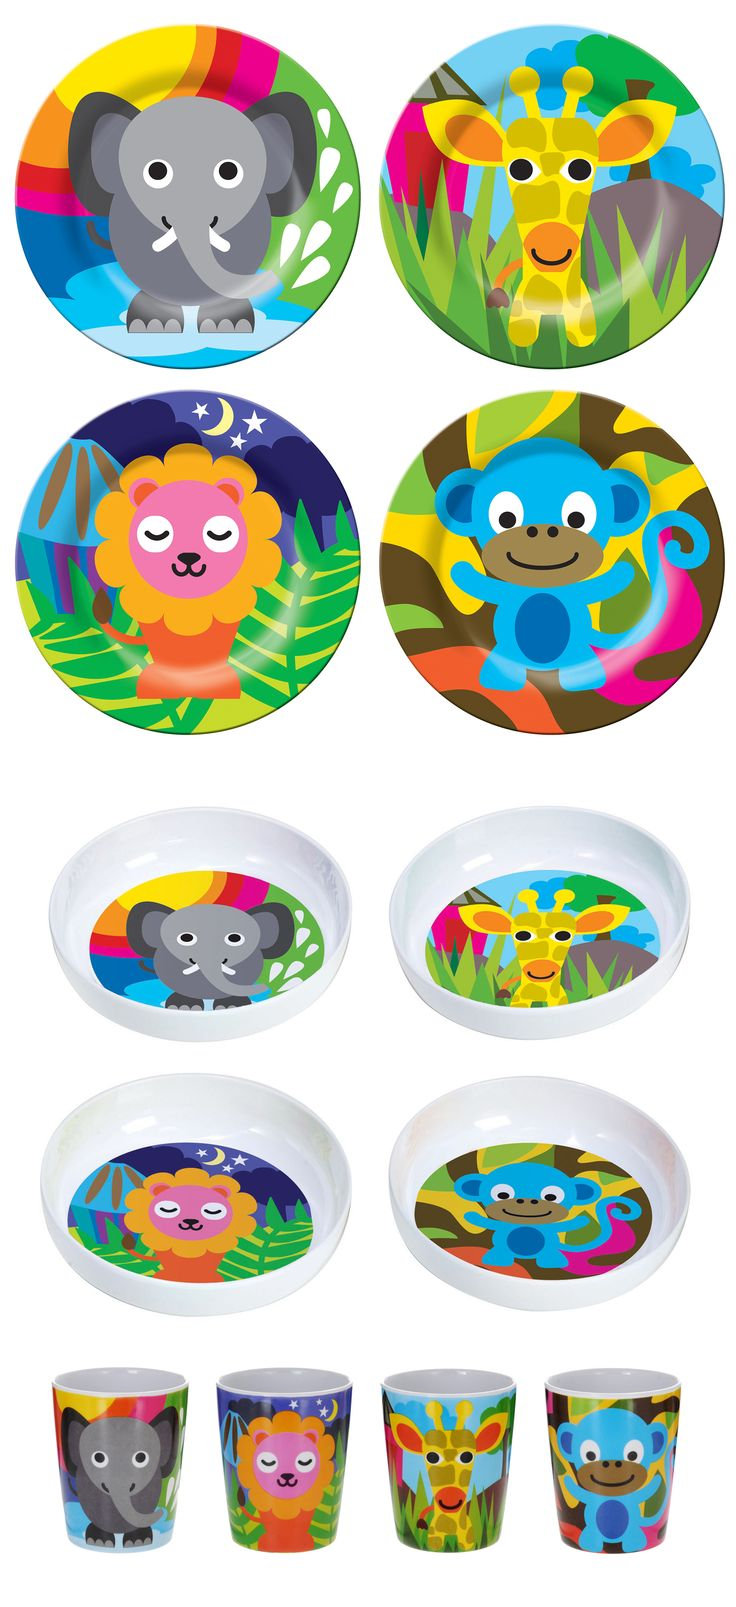 best kids images on pinterest  target sleepover and tray - french bull jungle collection melamine kids plates kids bowls kidsjuice cups